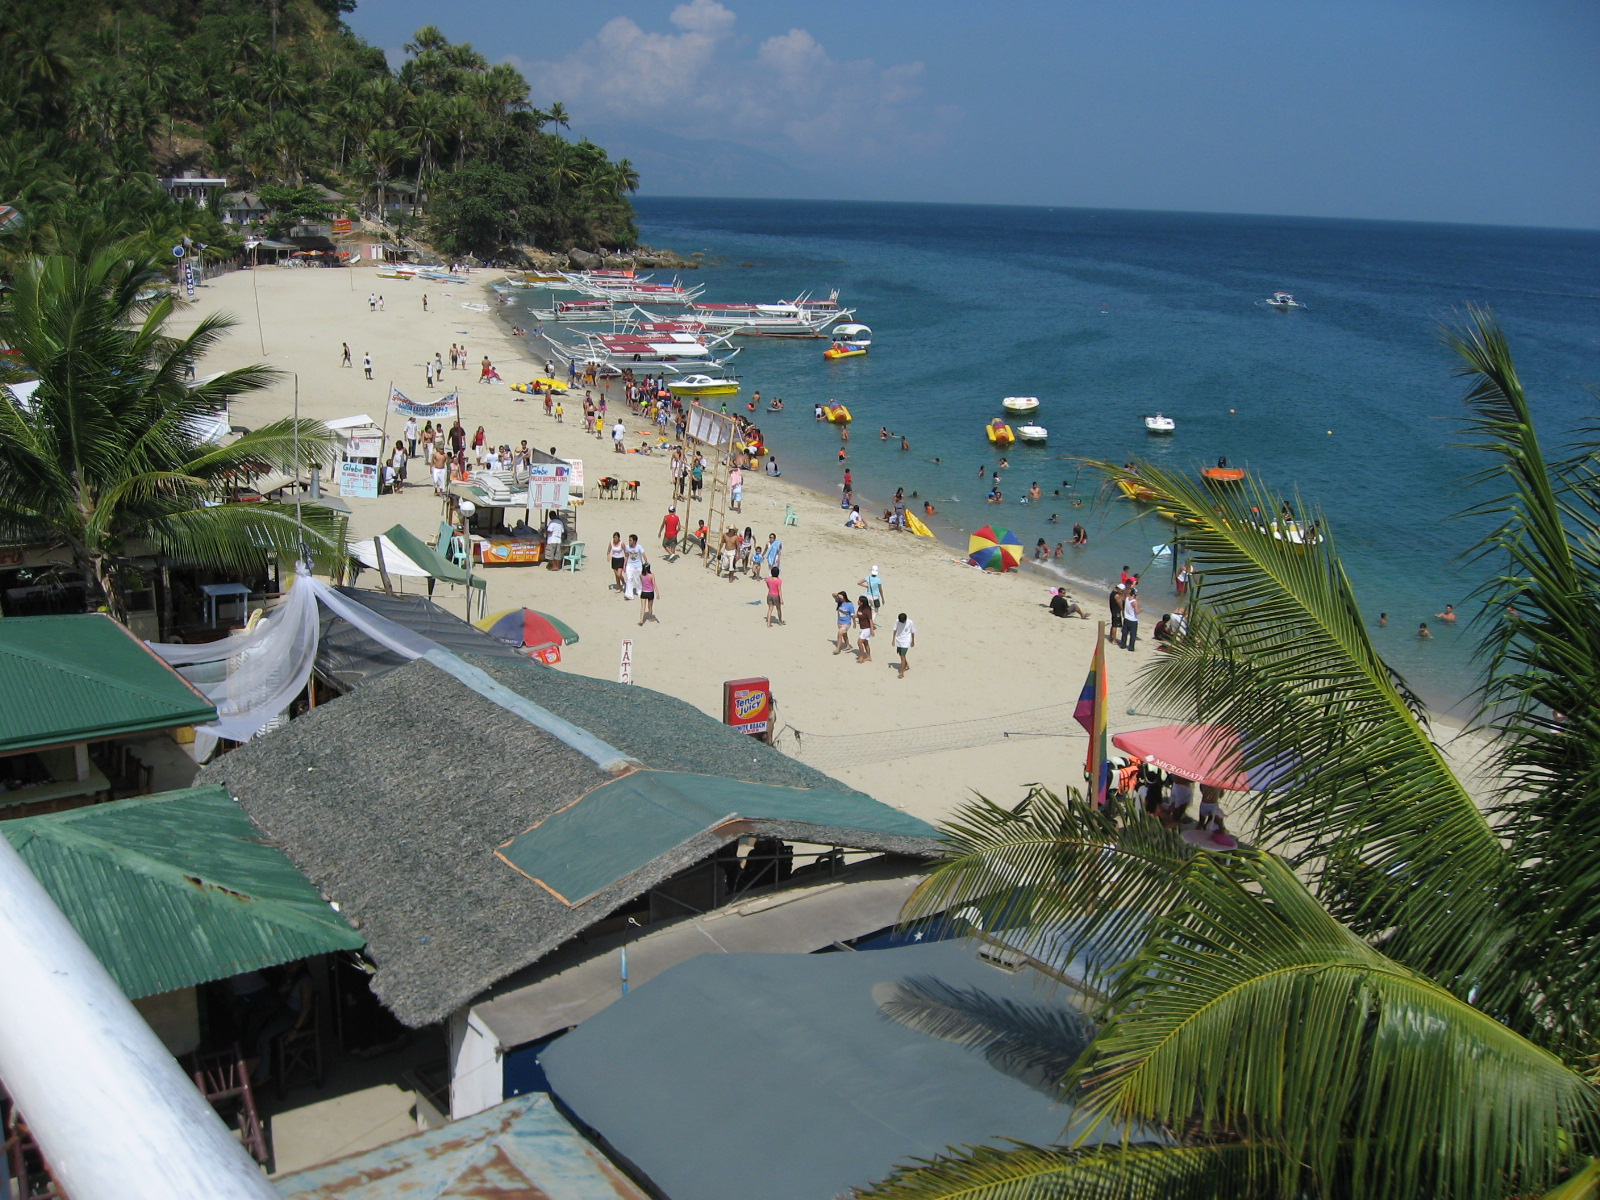 Puerto Galera Philippines  city photos gallery : PH Puerto Galera White Beach 2 Wikipedia, the free ...